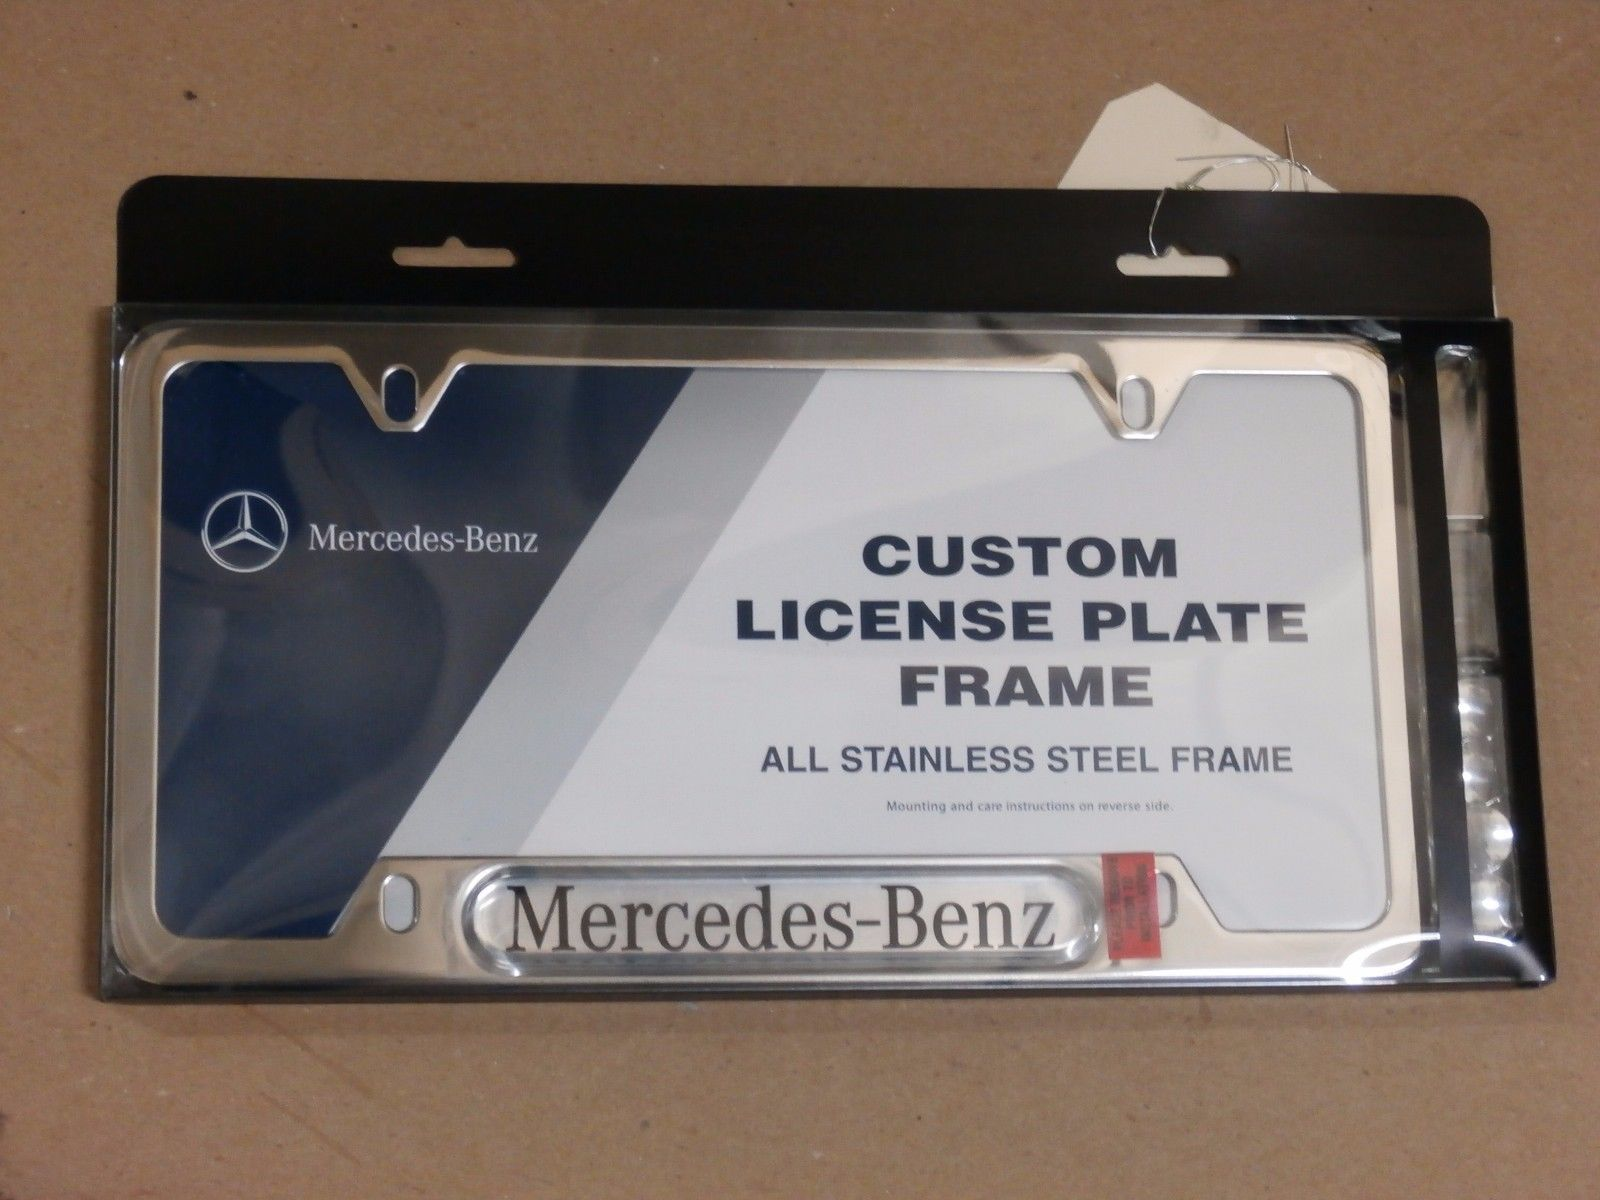 Awesome Awesome Mercedes-Benz Genuine Polished Stainless Steel ...